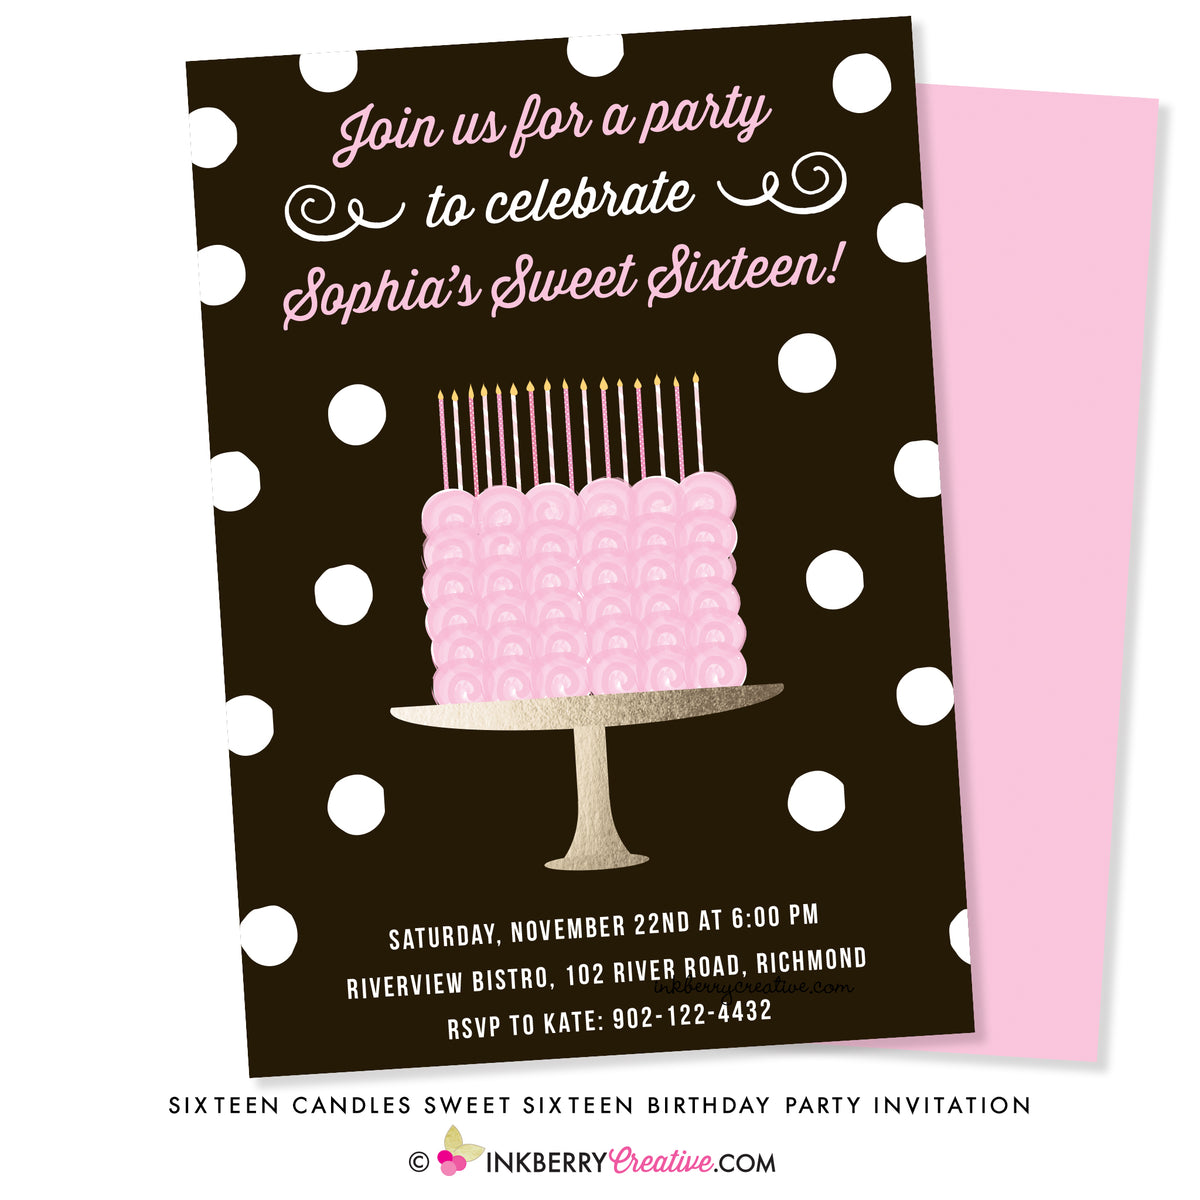 Sixteen Candles Sweet 16 Birthday Cake Party Invitation Inkberry Creative Inc